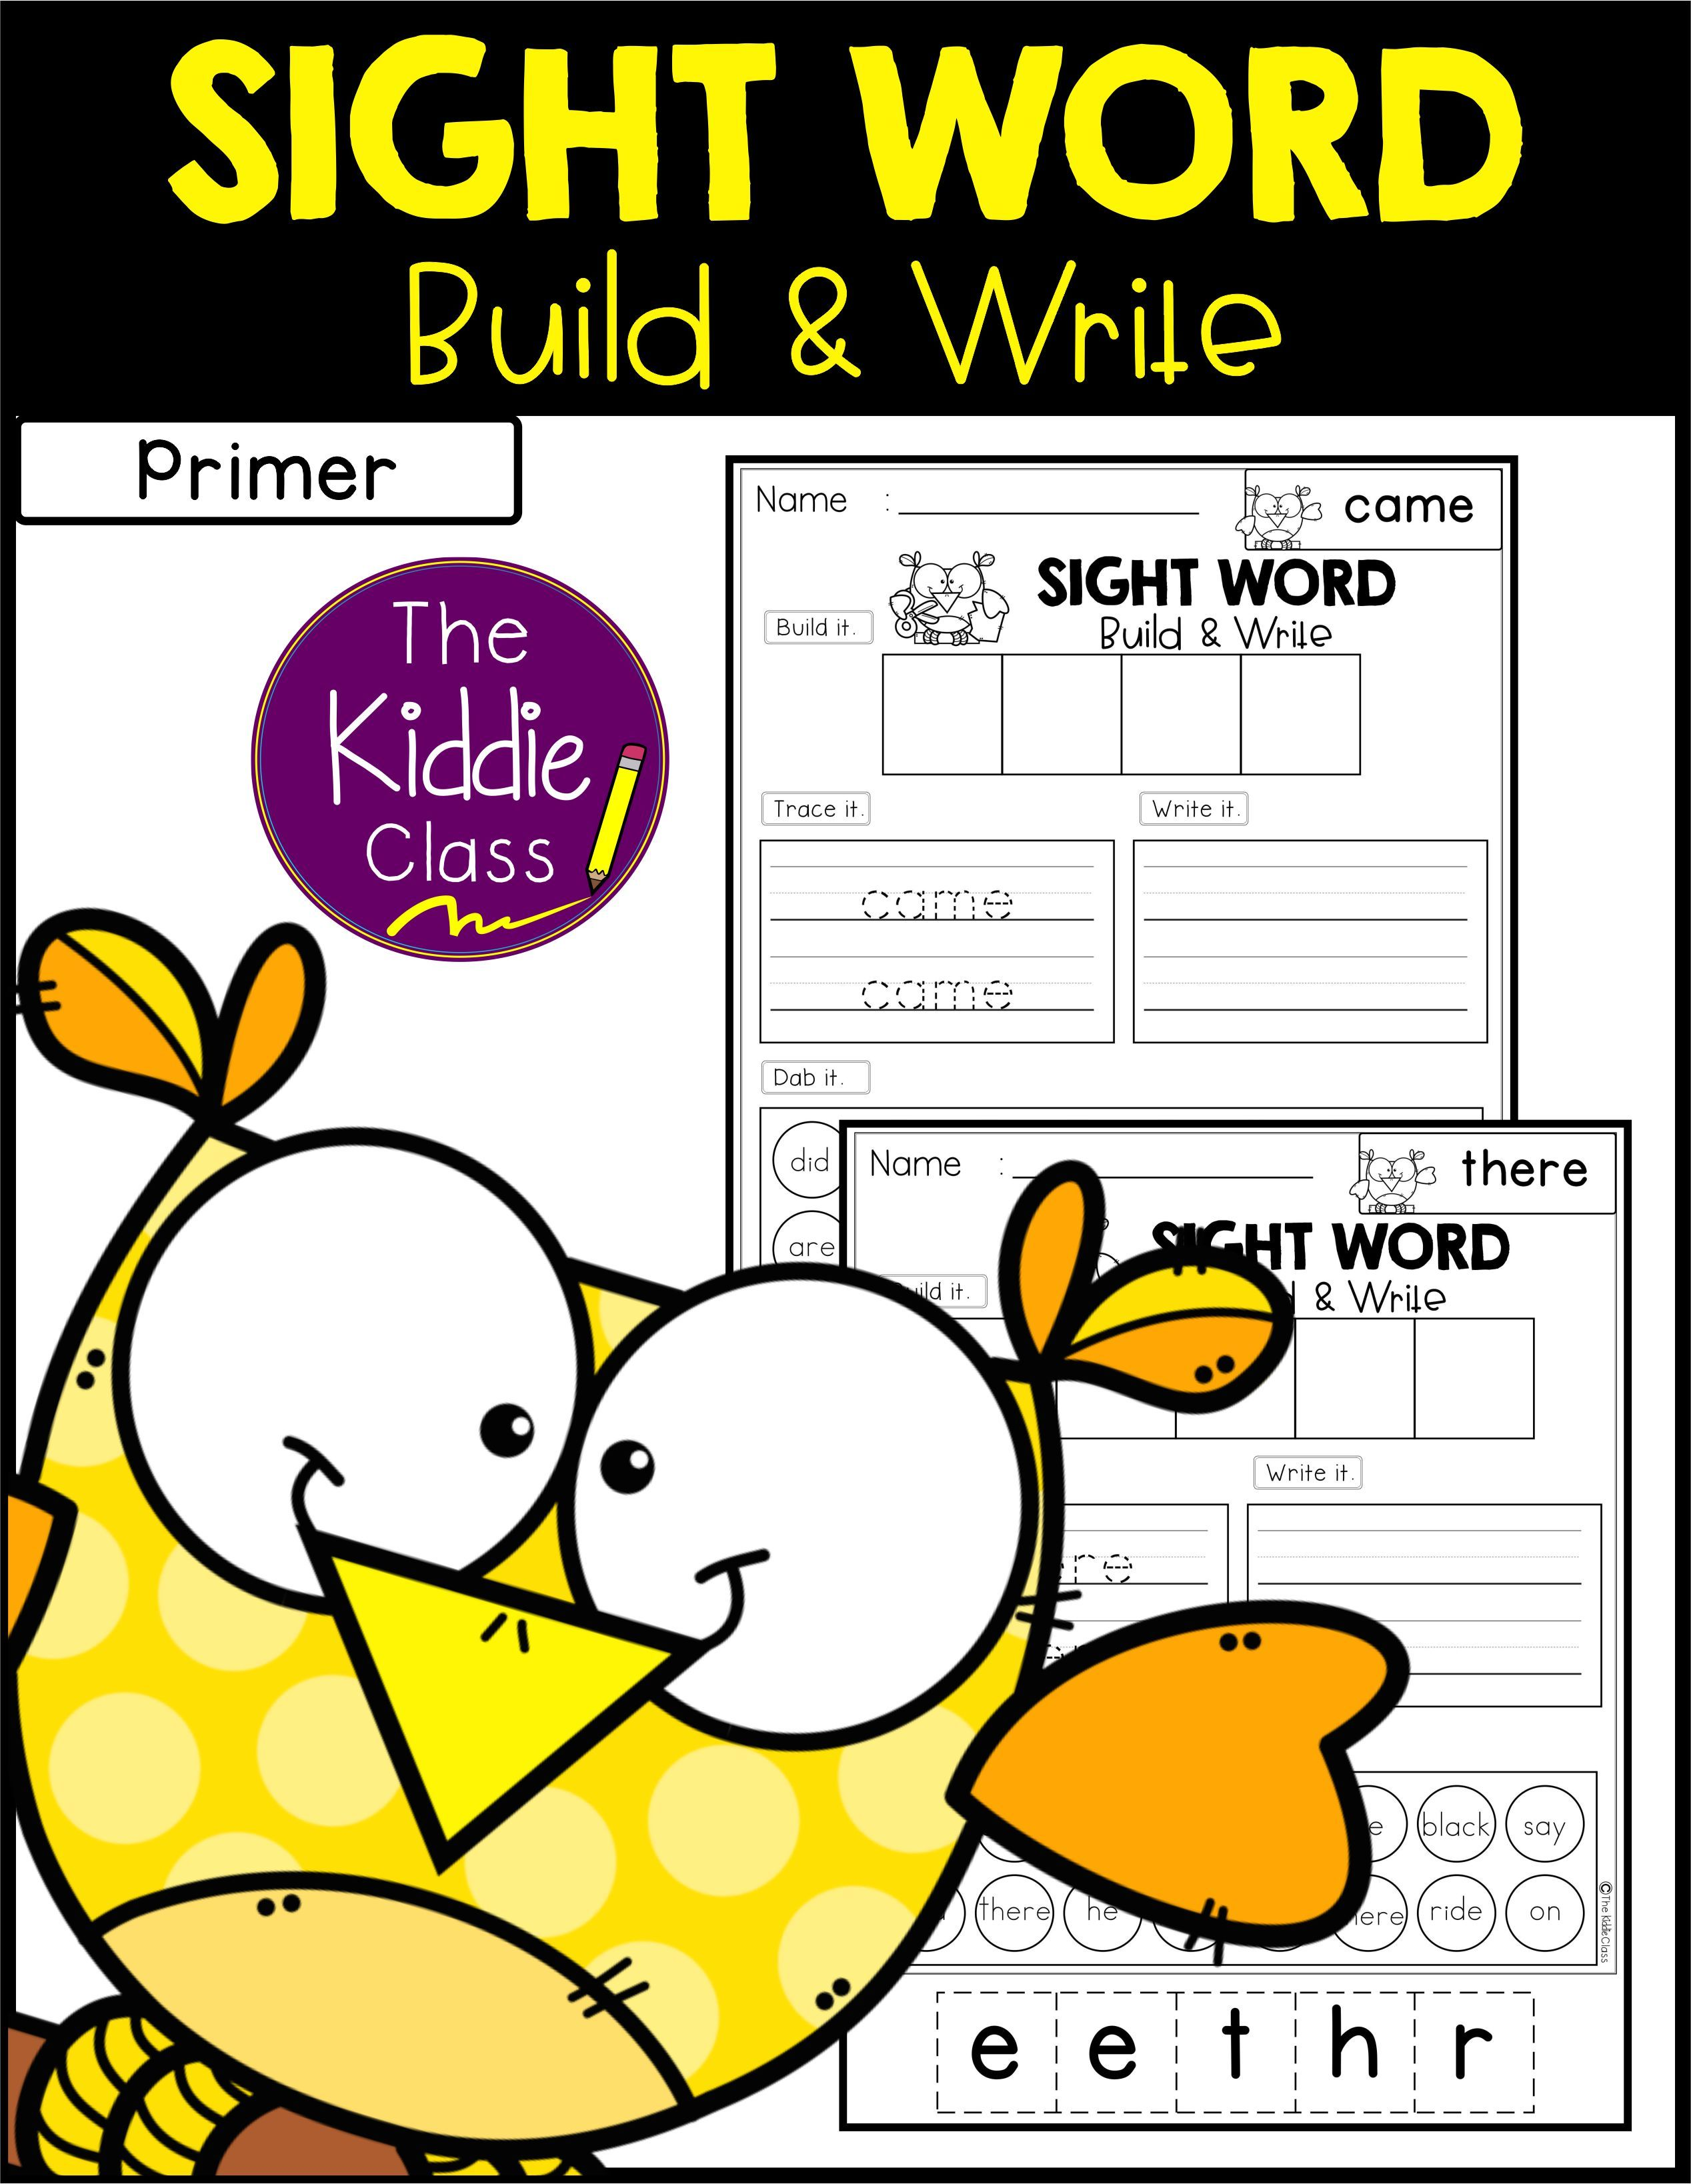 Sight Word Build And Write Primer